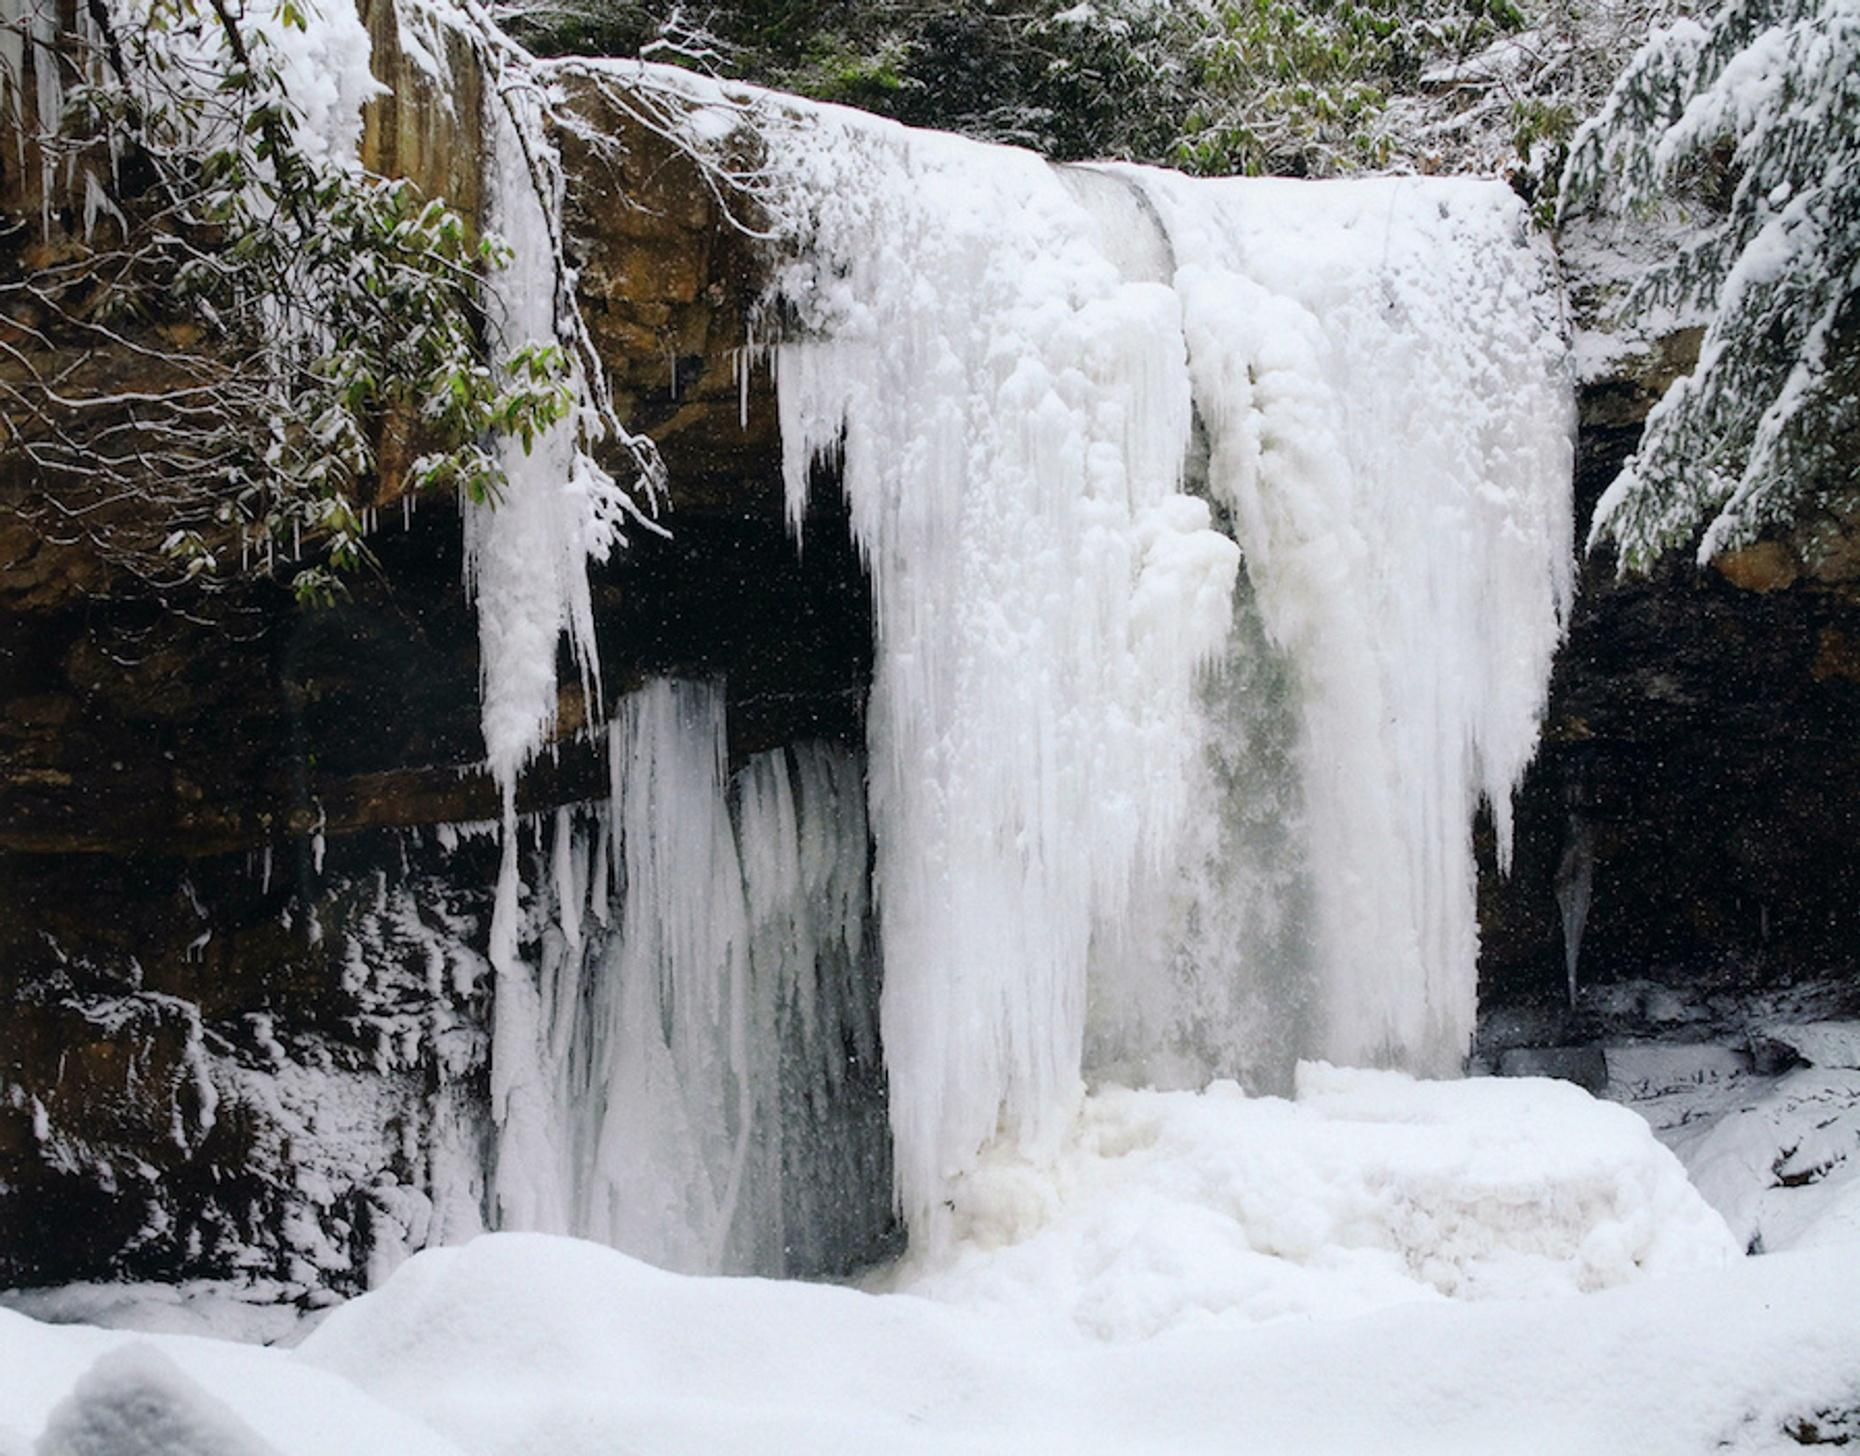 Half-Day Winter Waterfall Ice Hiking Excursion in Benton